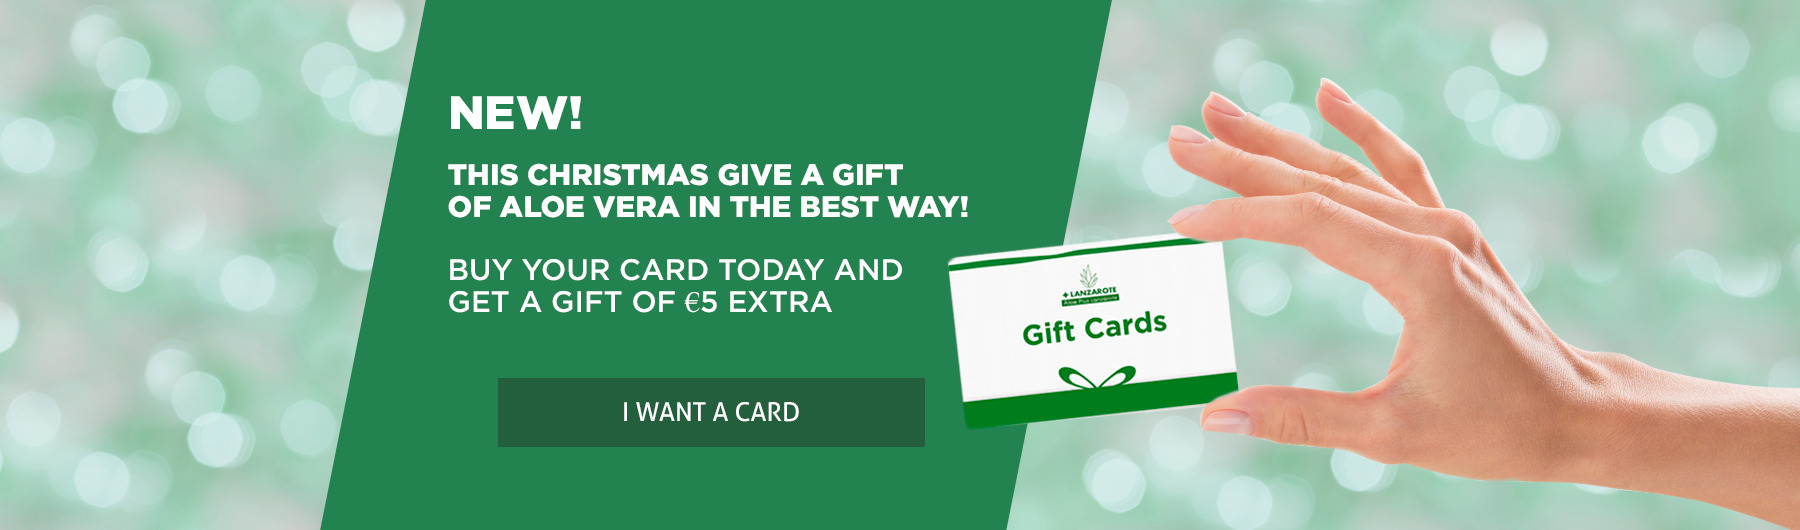 New! We have GIFT CARDS available for your loved ones.